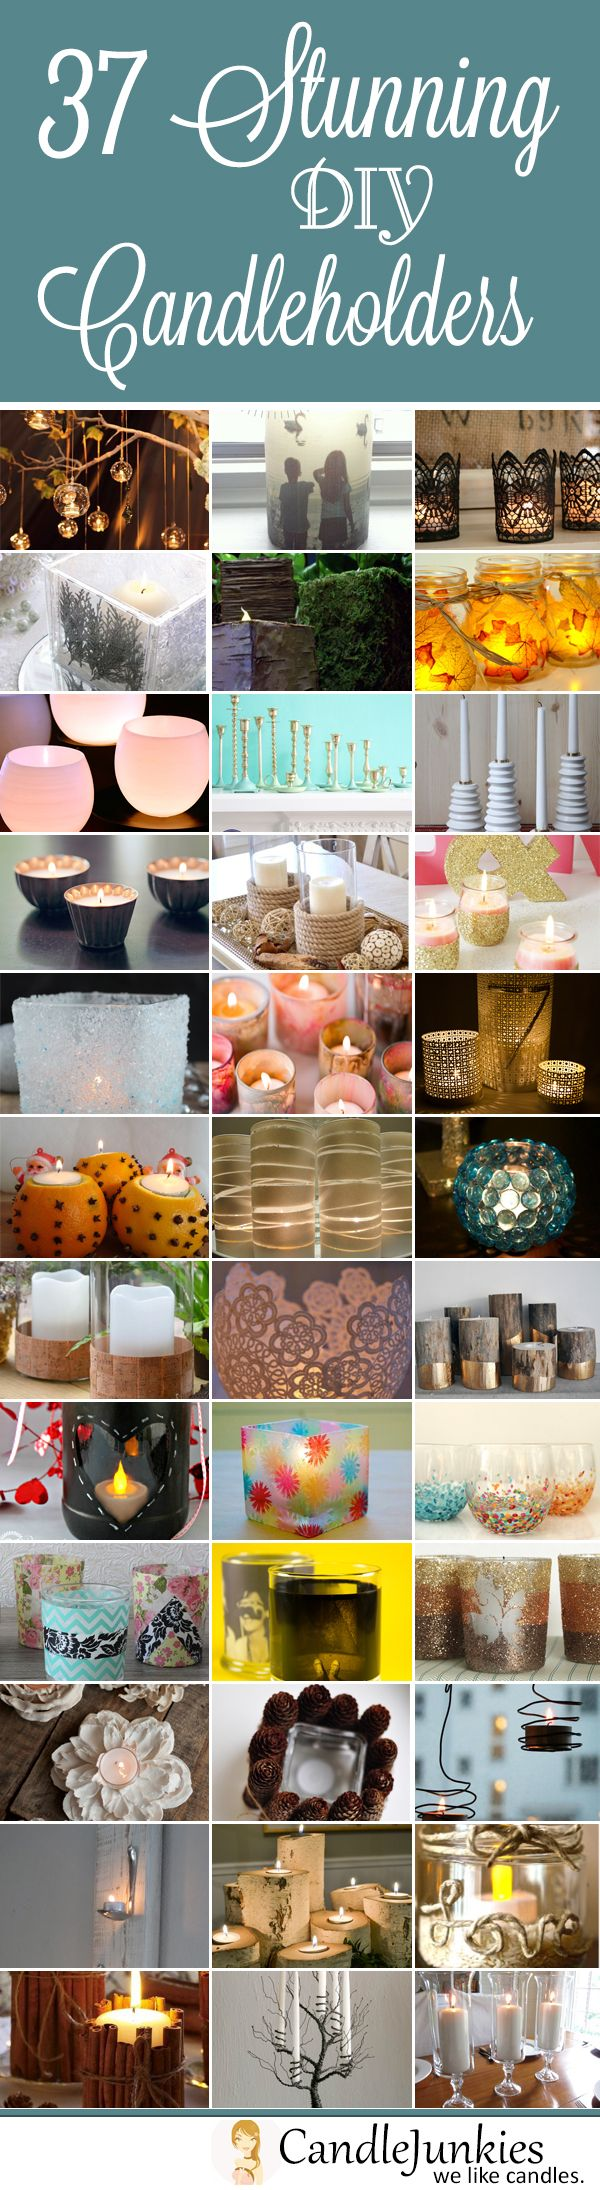 A list of 37 absolutely stunning DIY candle holders and votive's.